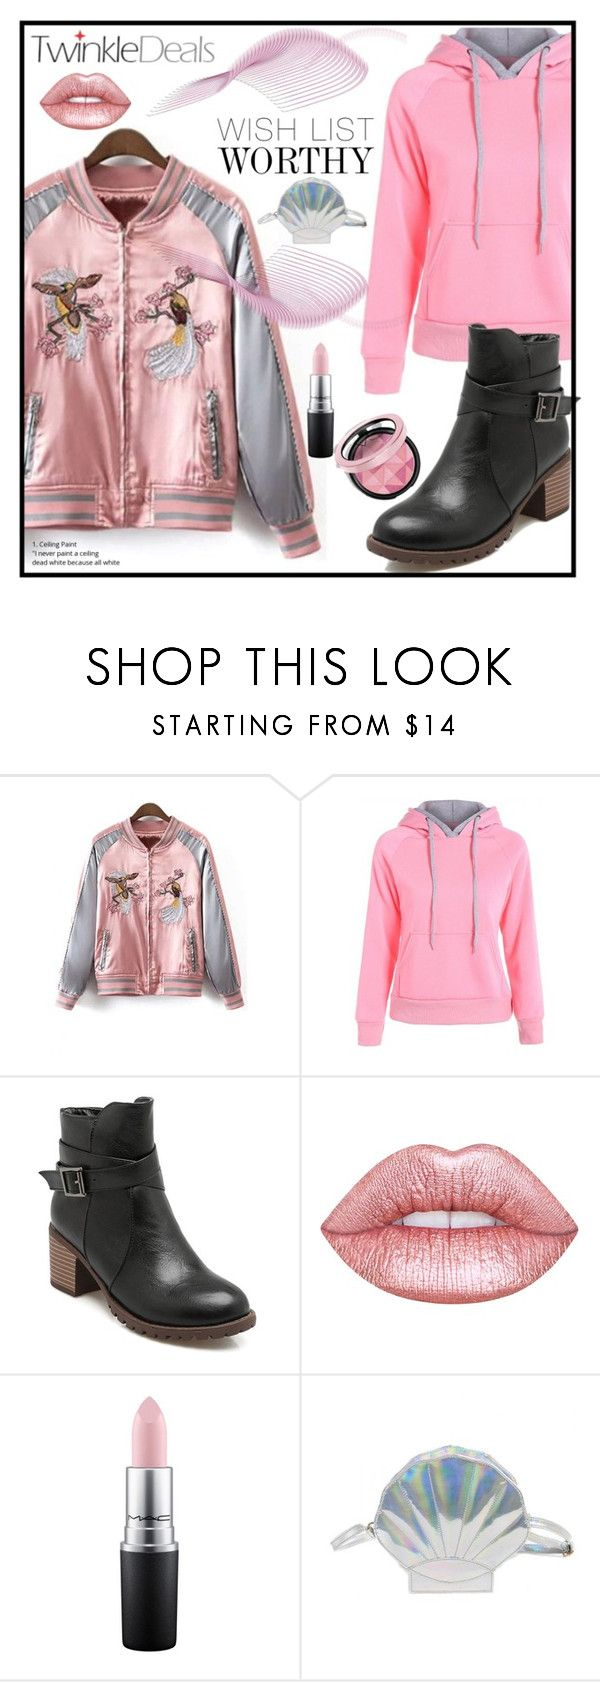 """""""Twinkledeals contest!"""" by zon-vito ❤ liked on Polyvore featuring Lime Crime and MAC Cosmetics"""